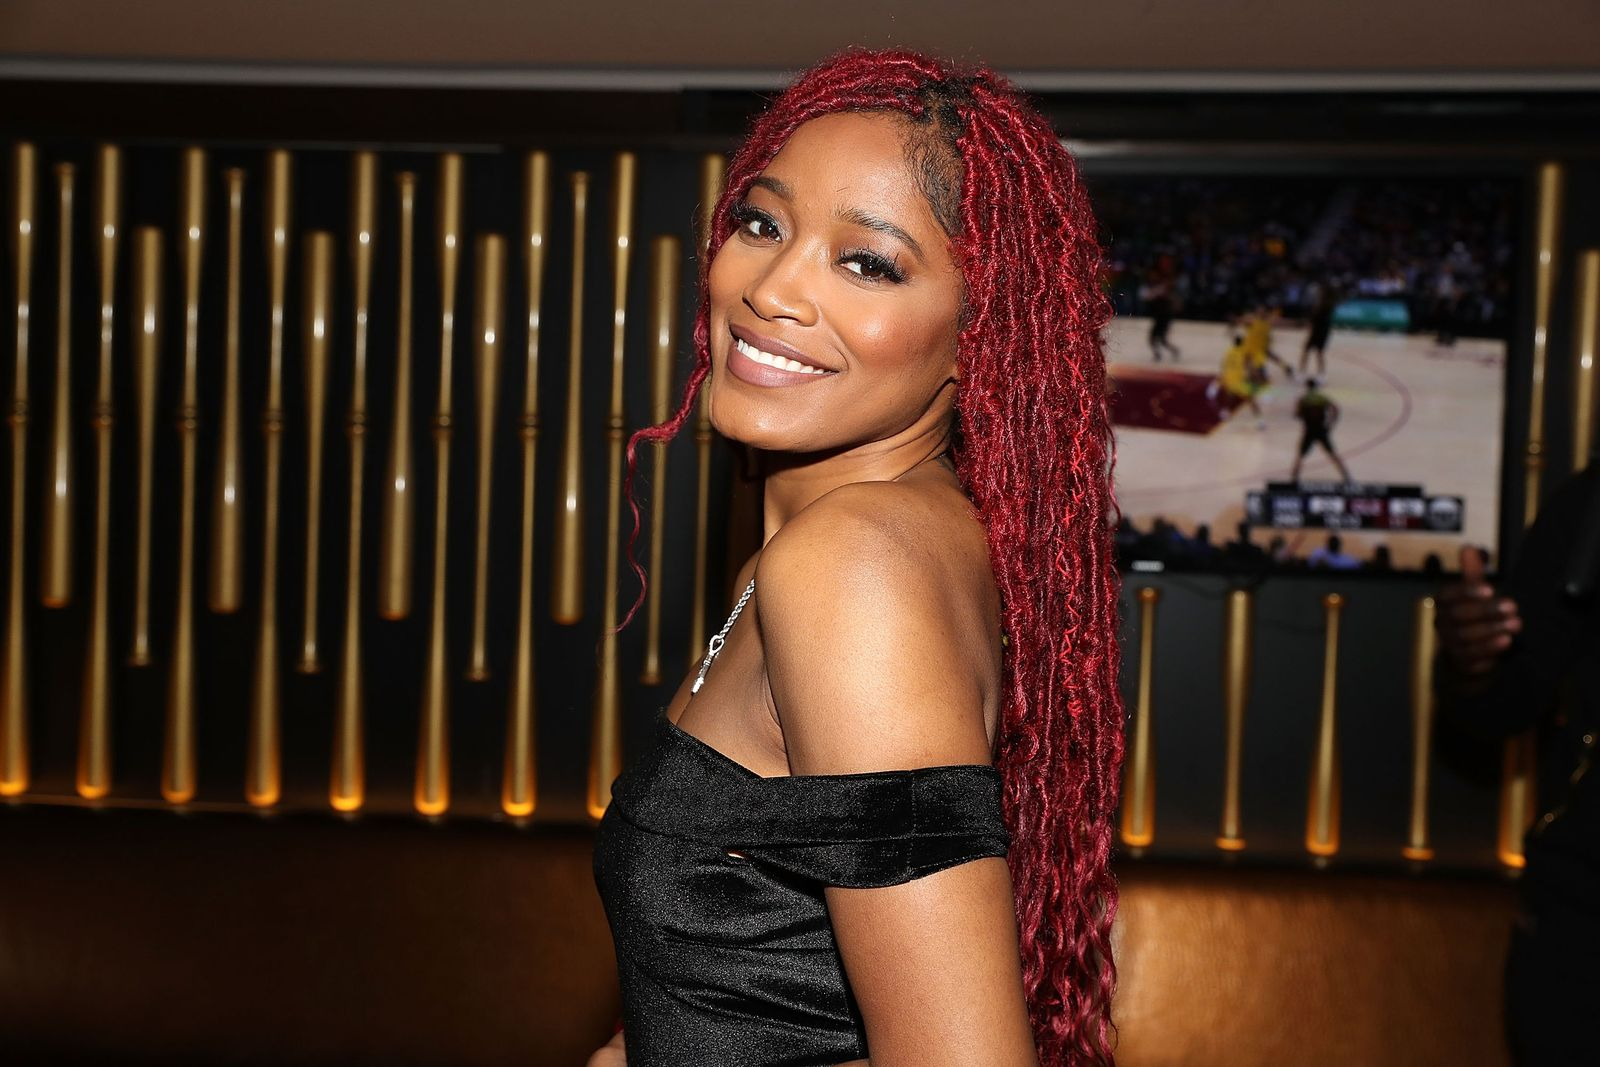 Singer and actress Keke Palmer at her listening party at the 40/40 club in 2018 | Photo: Getty Images